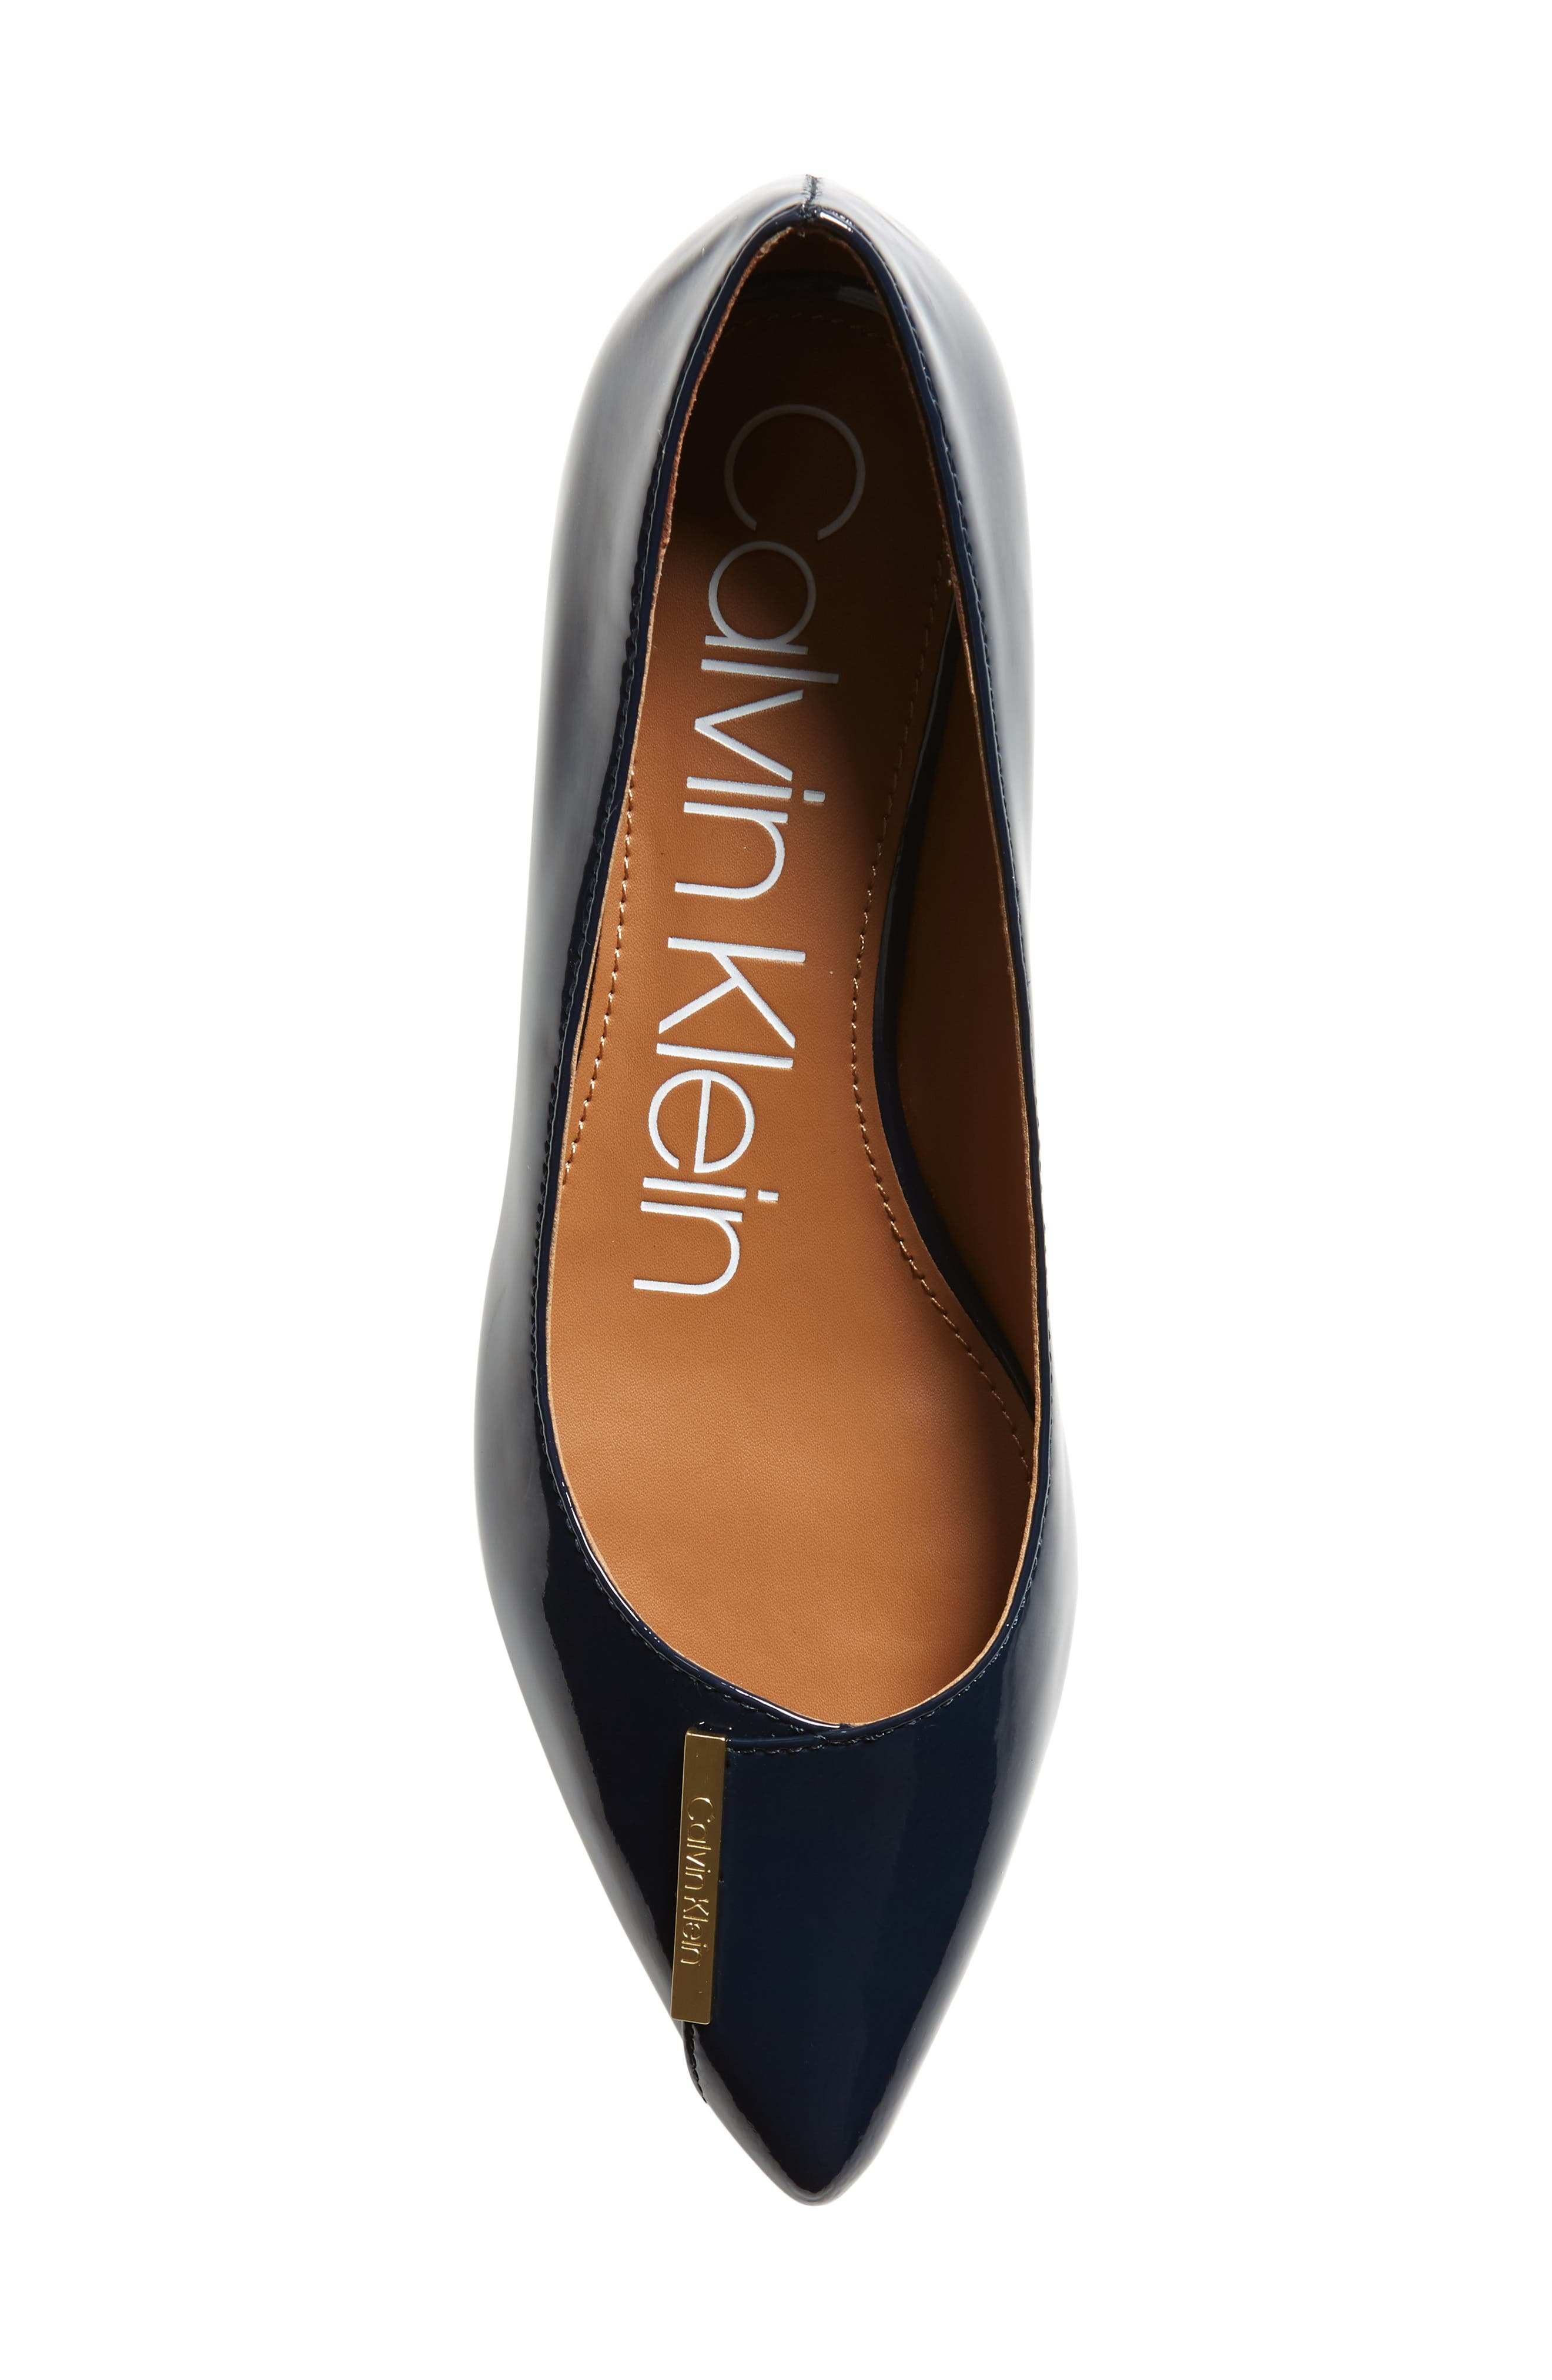 Arline Pointy Toe Flat,                             Alternate thumbnail 5, color,                             NAVY PATENT LEATHER